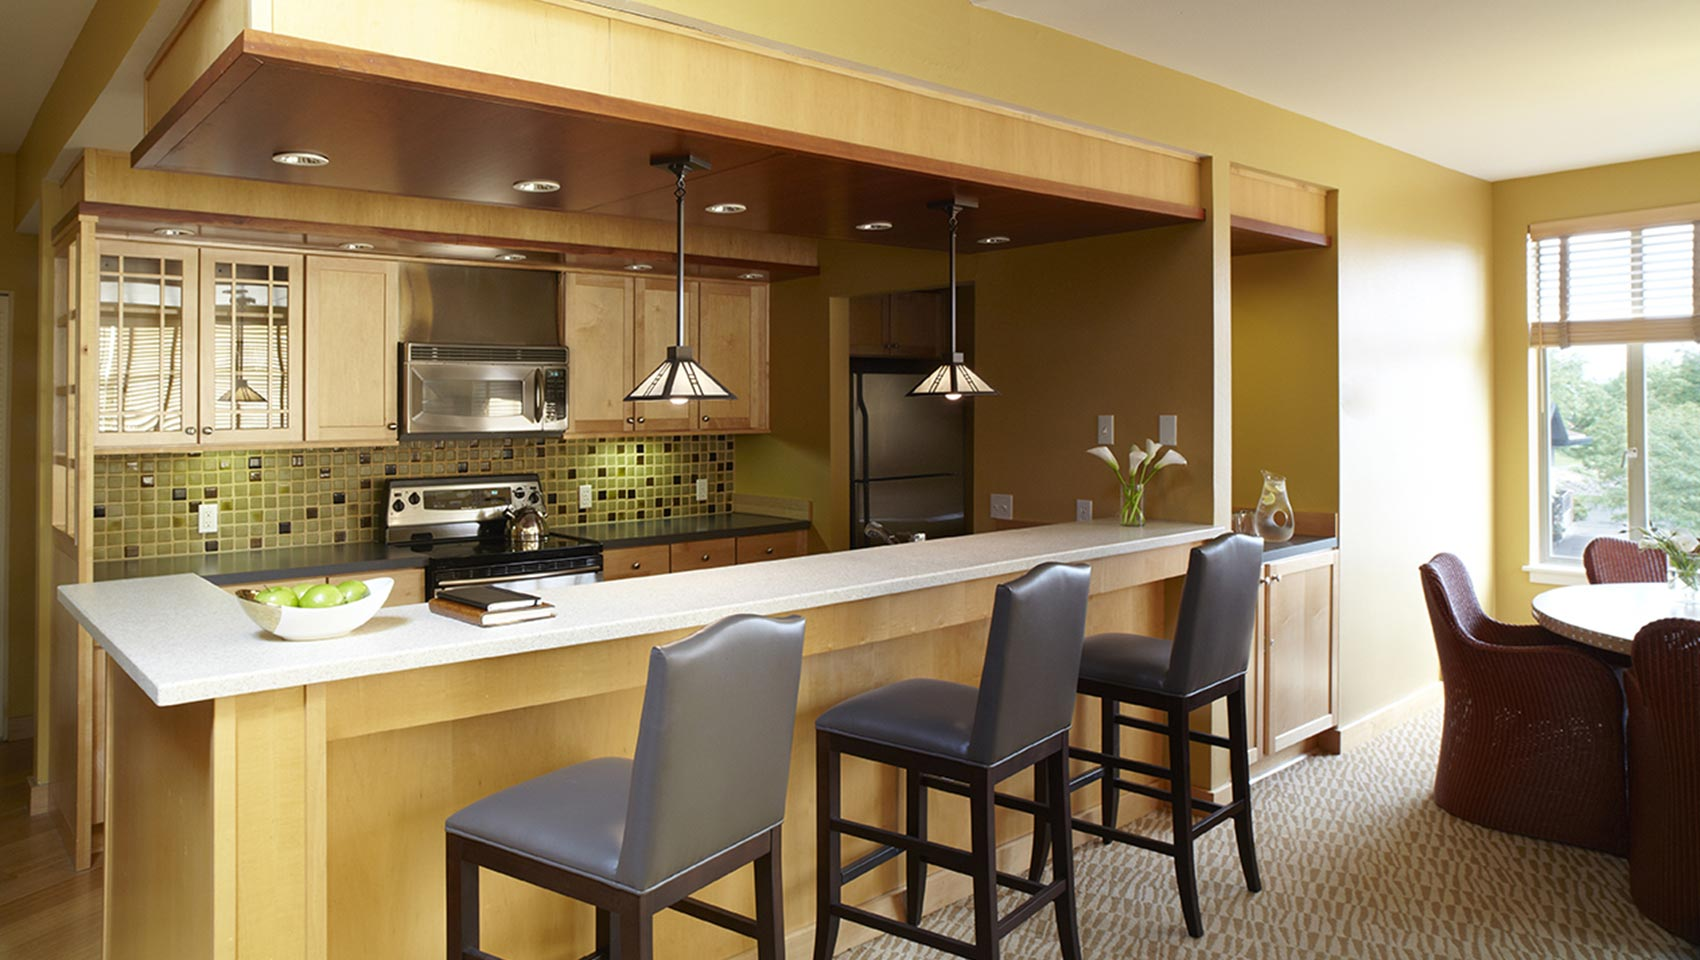 Kimpton RiverPlace Marina Suite Kitchen